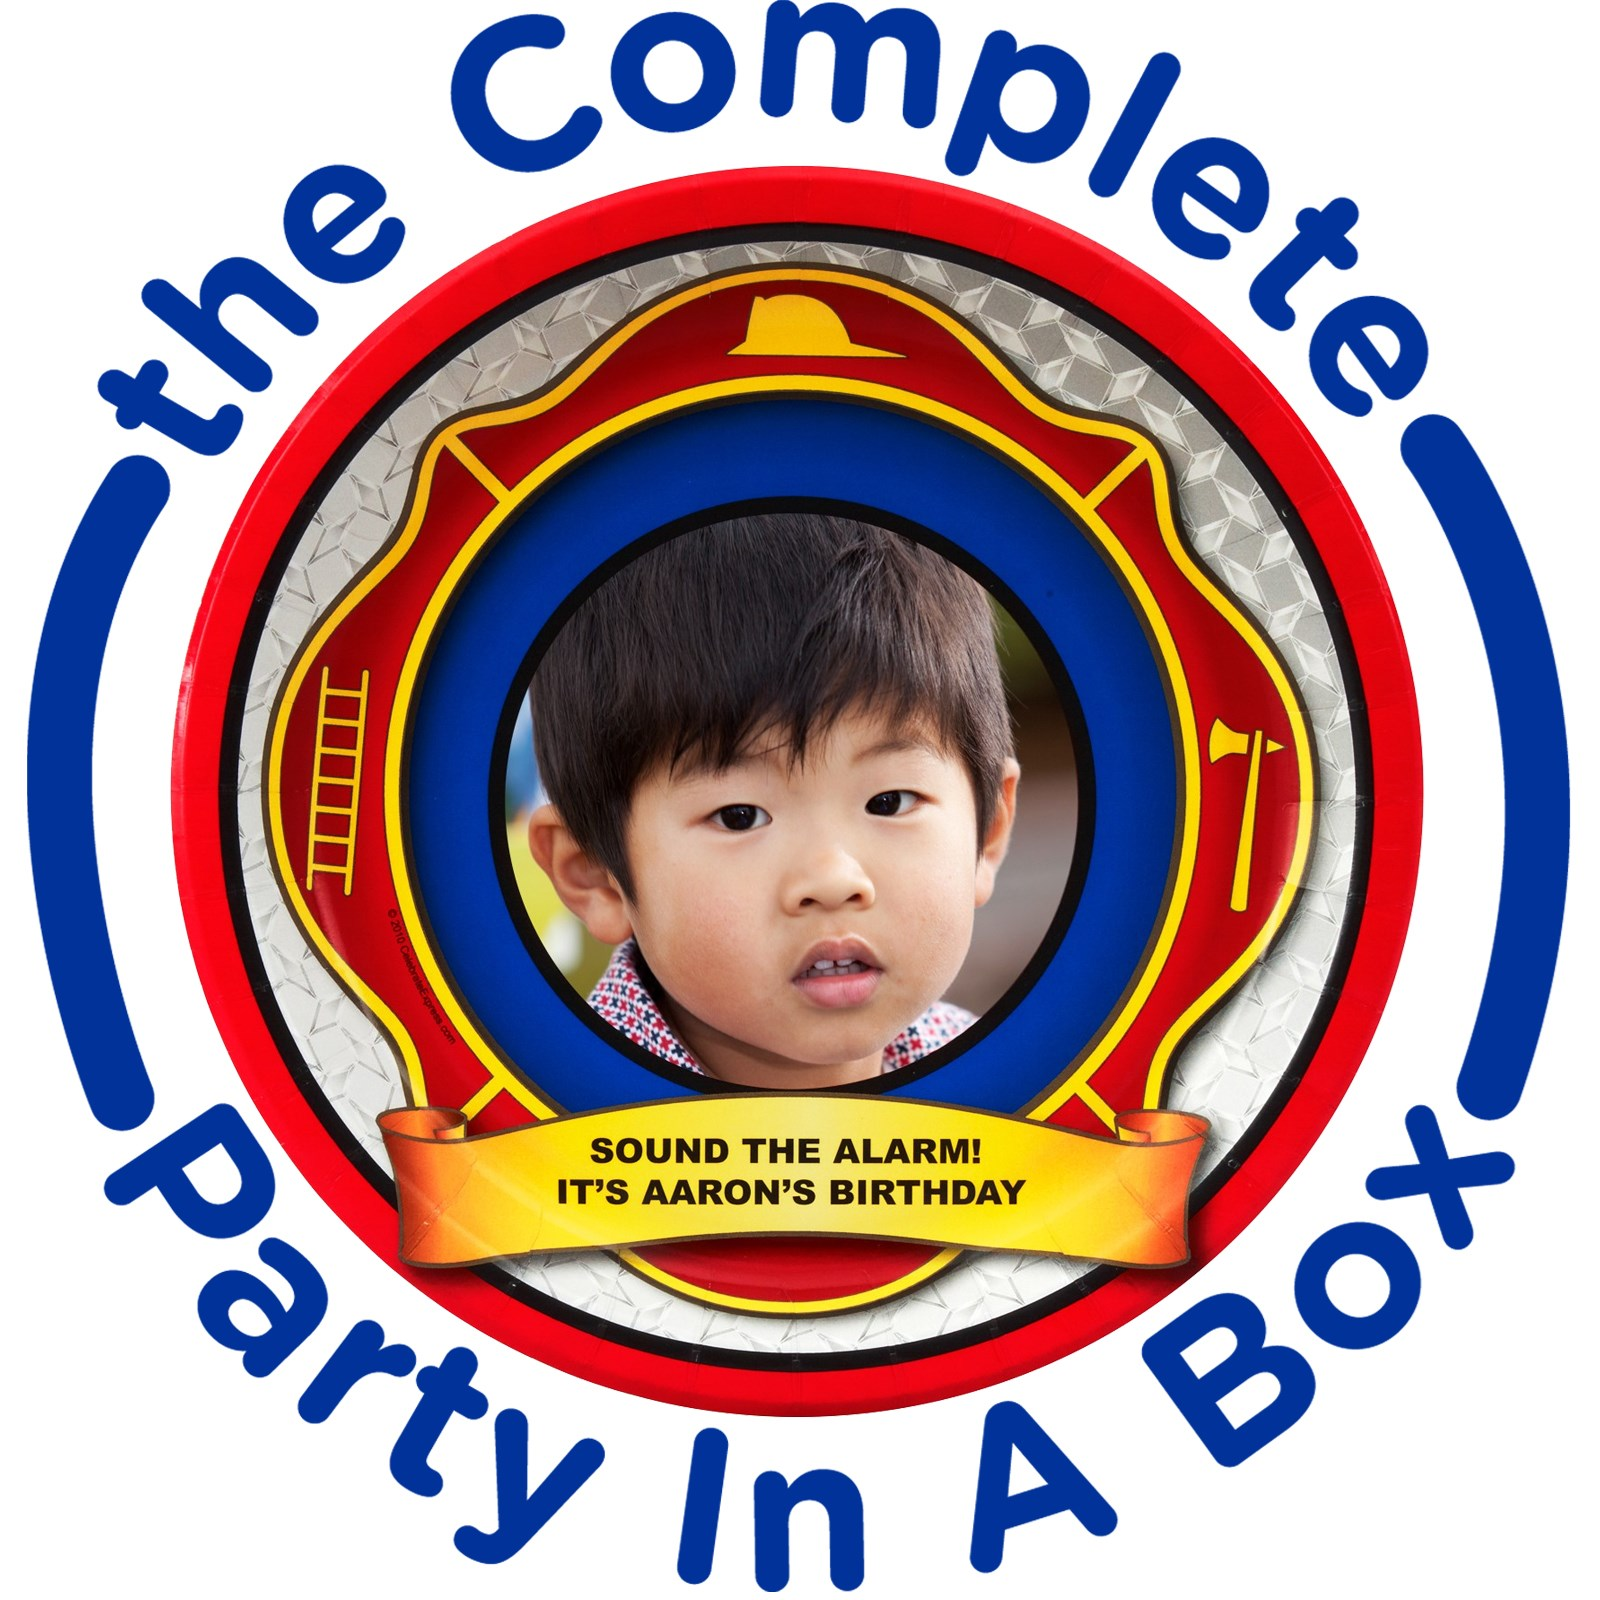 Image of Fire Trucks Personalized Party in a Box - Basic - 8 Guests